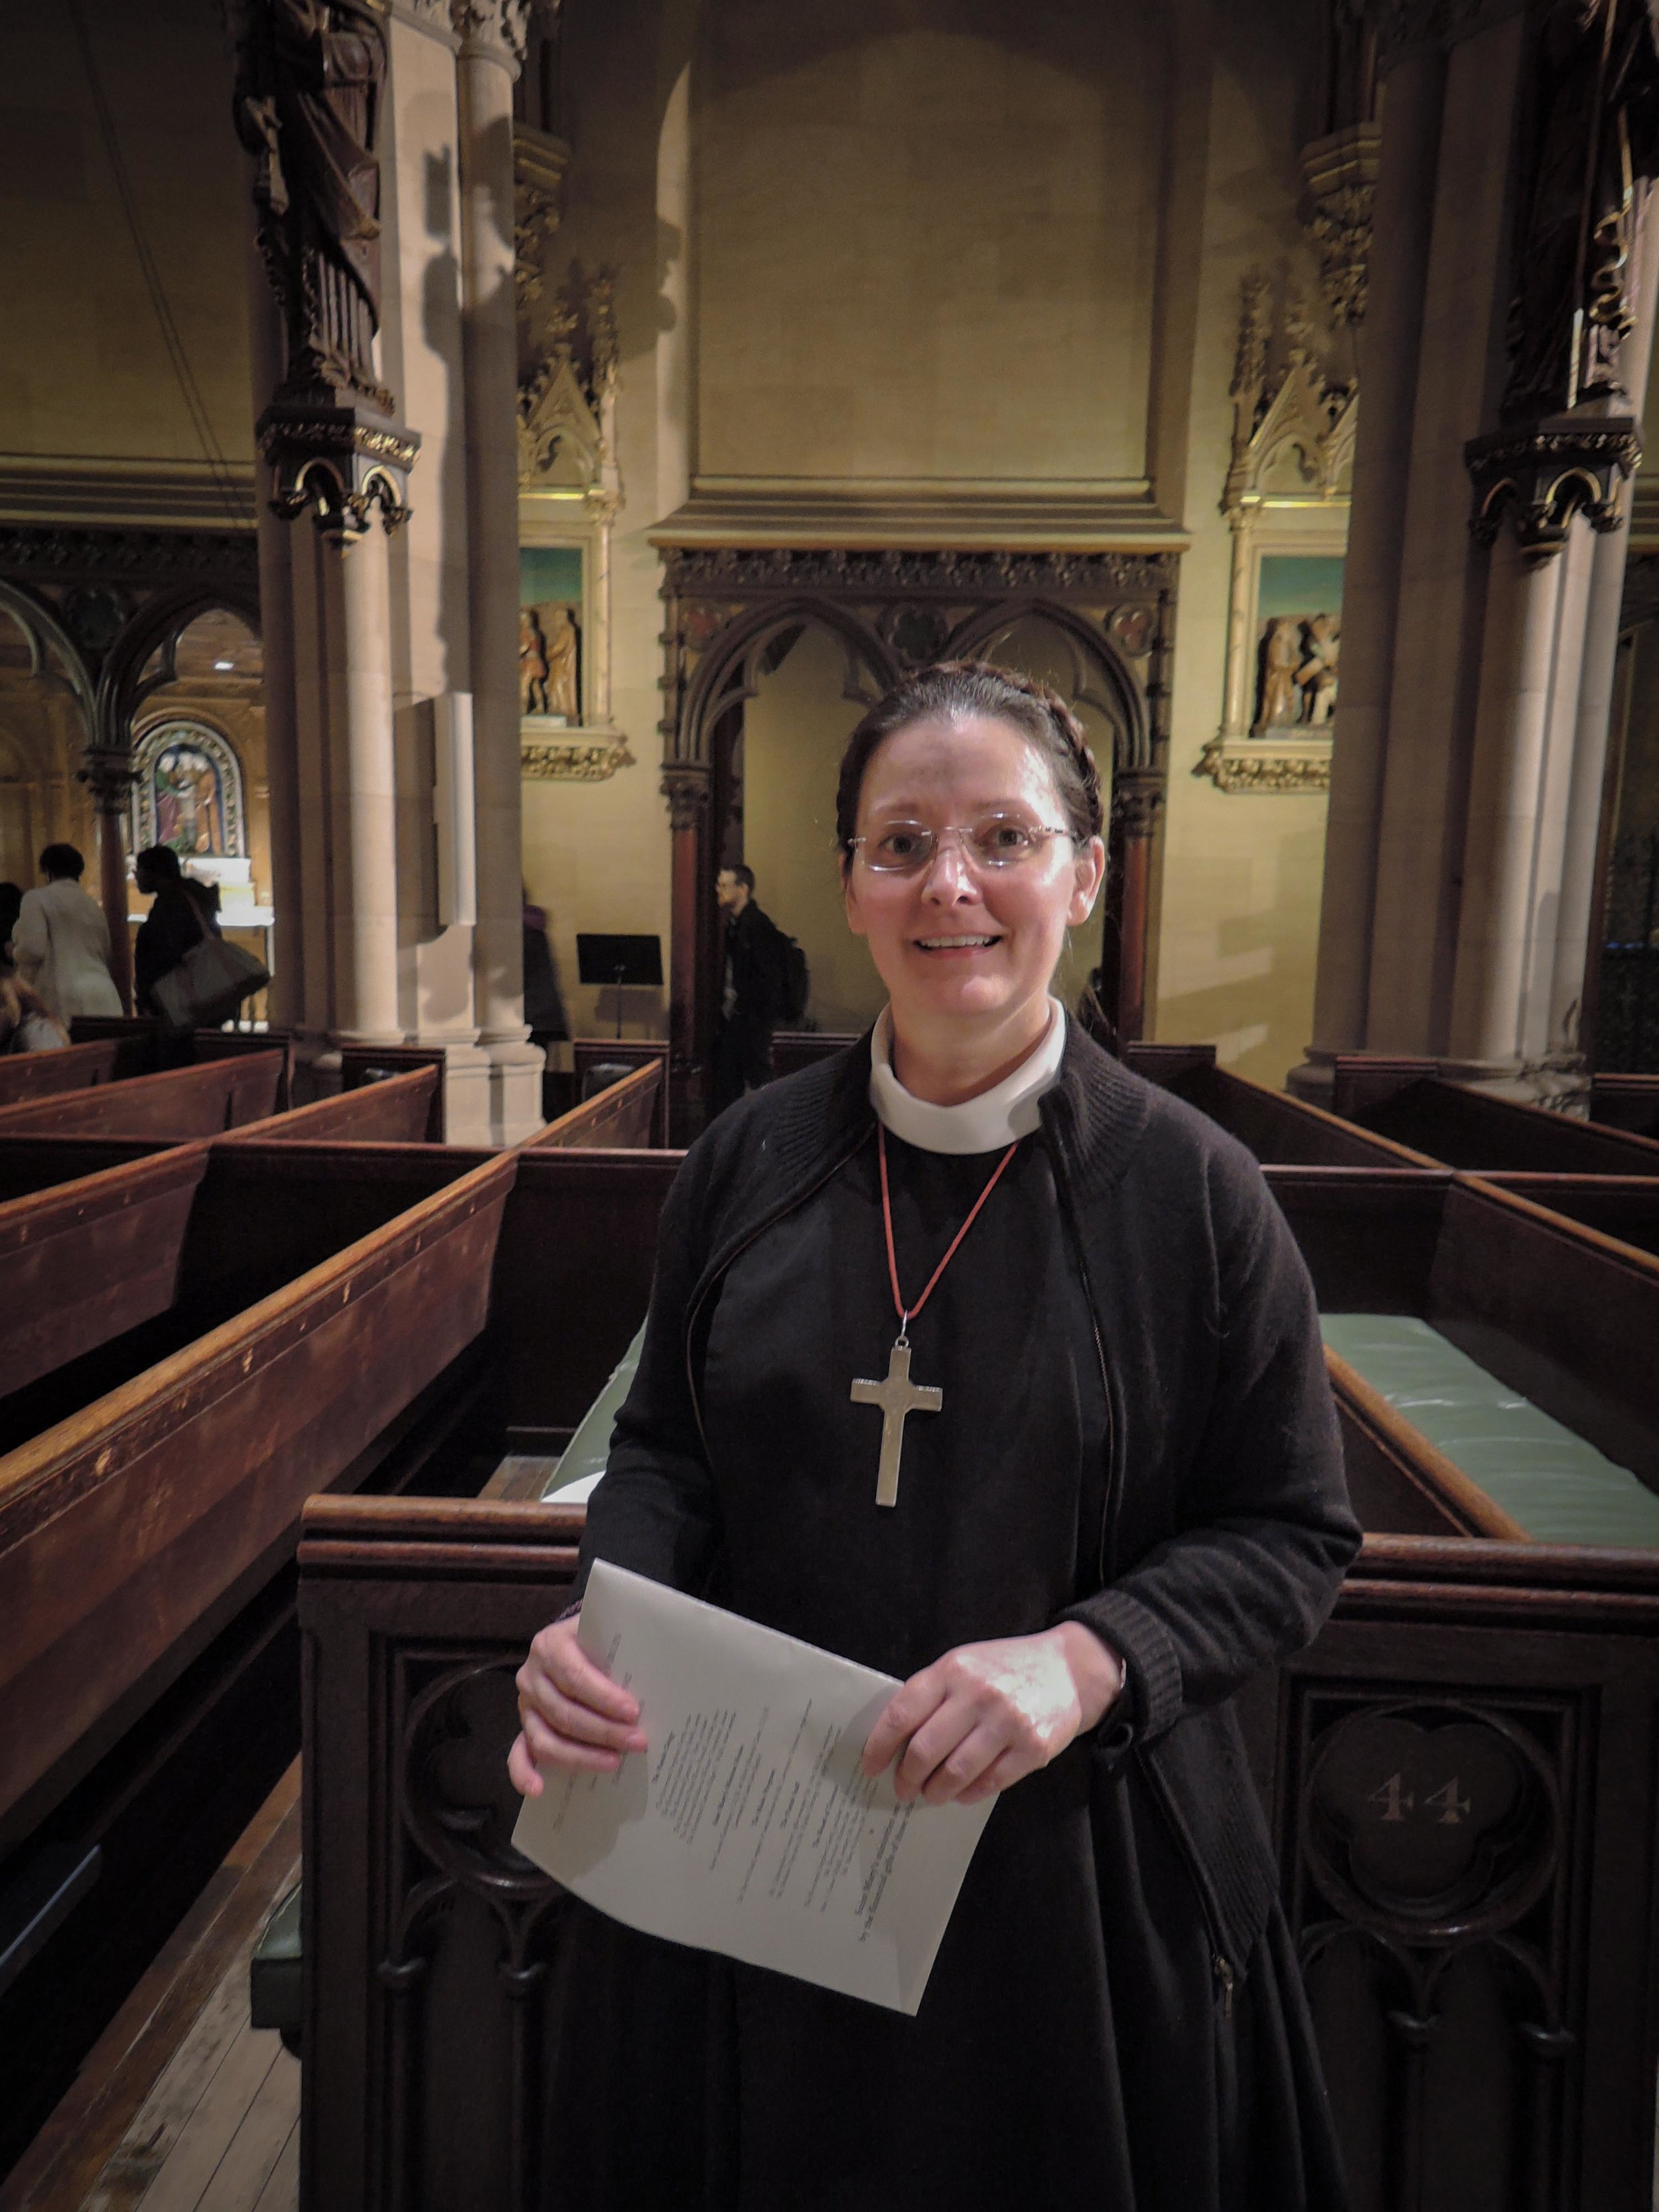 Sr. Monica Clare also assisted.